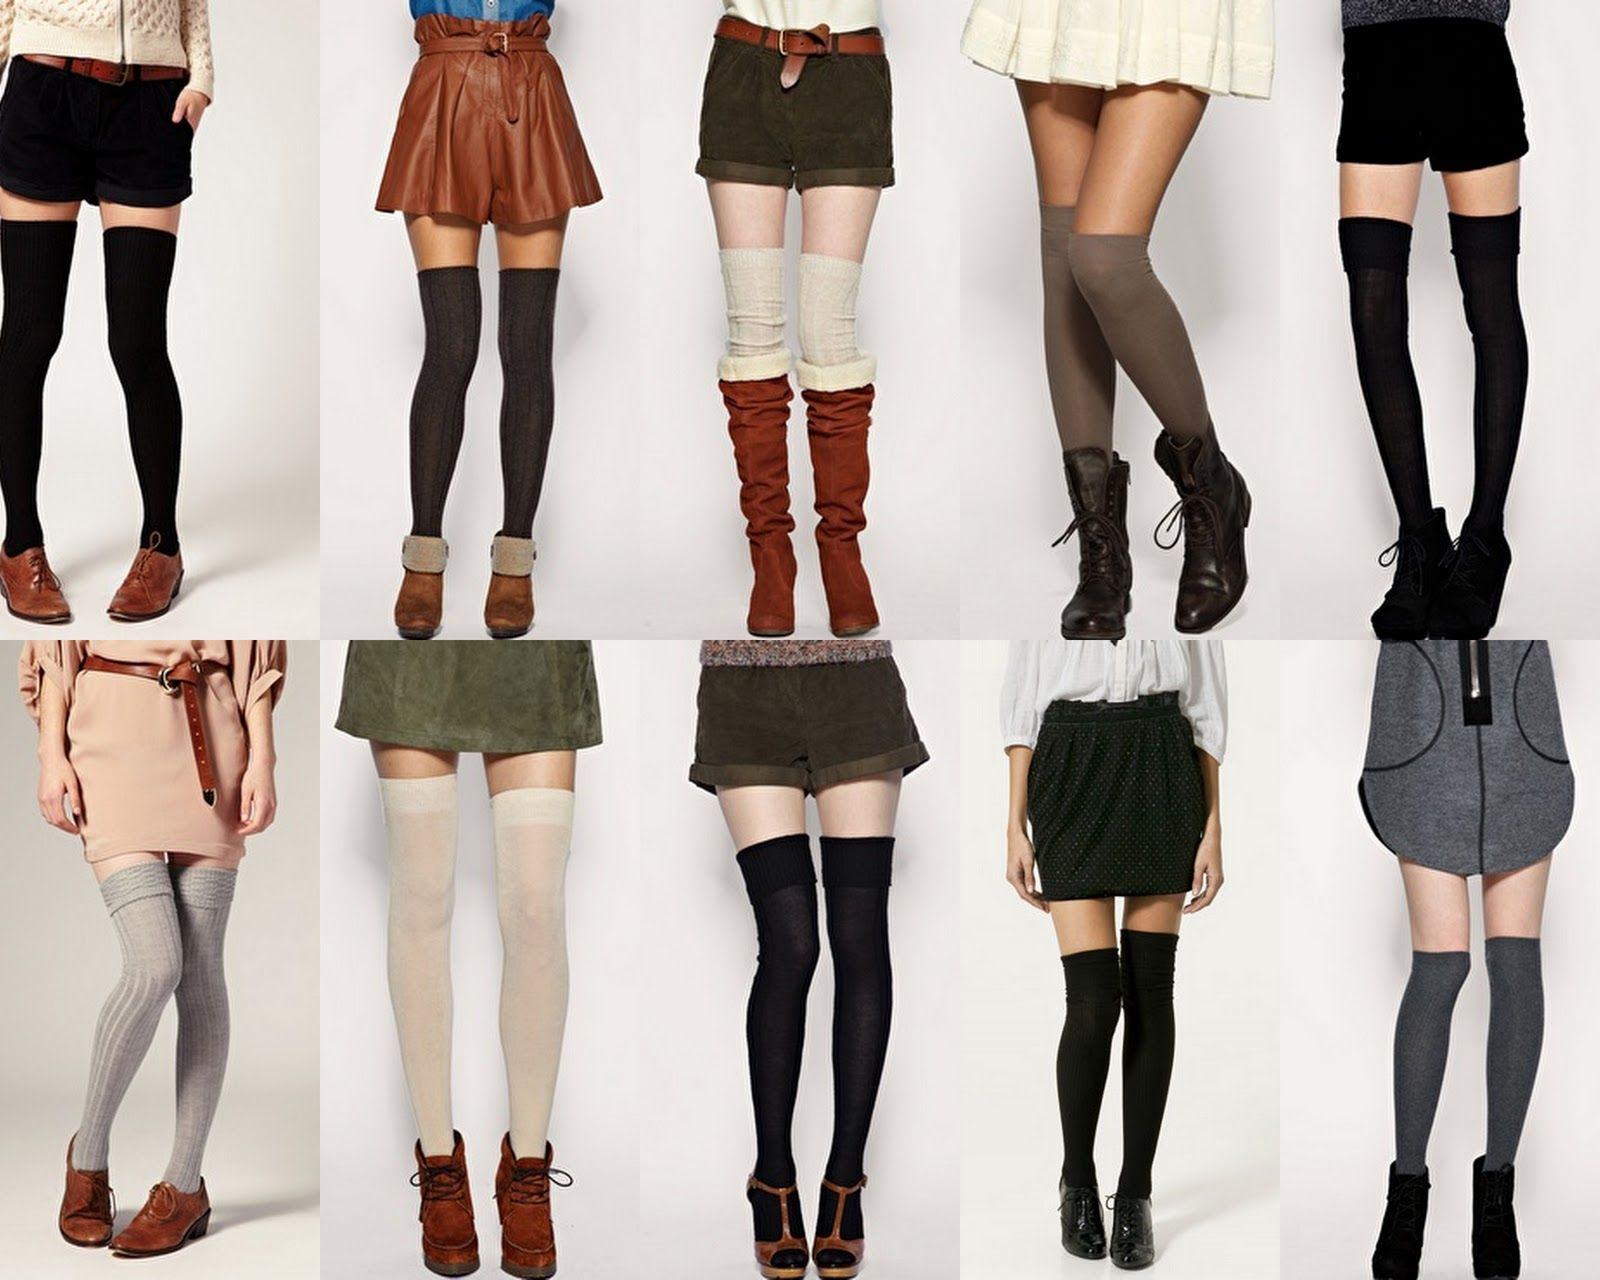 2019 year style- High Thigh socks outfit